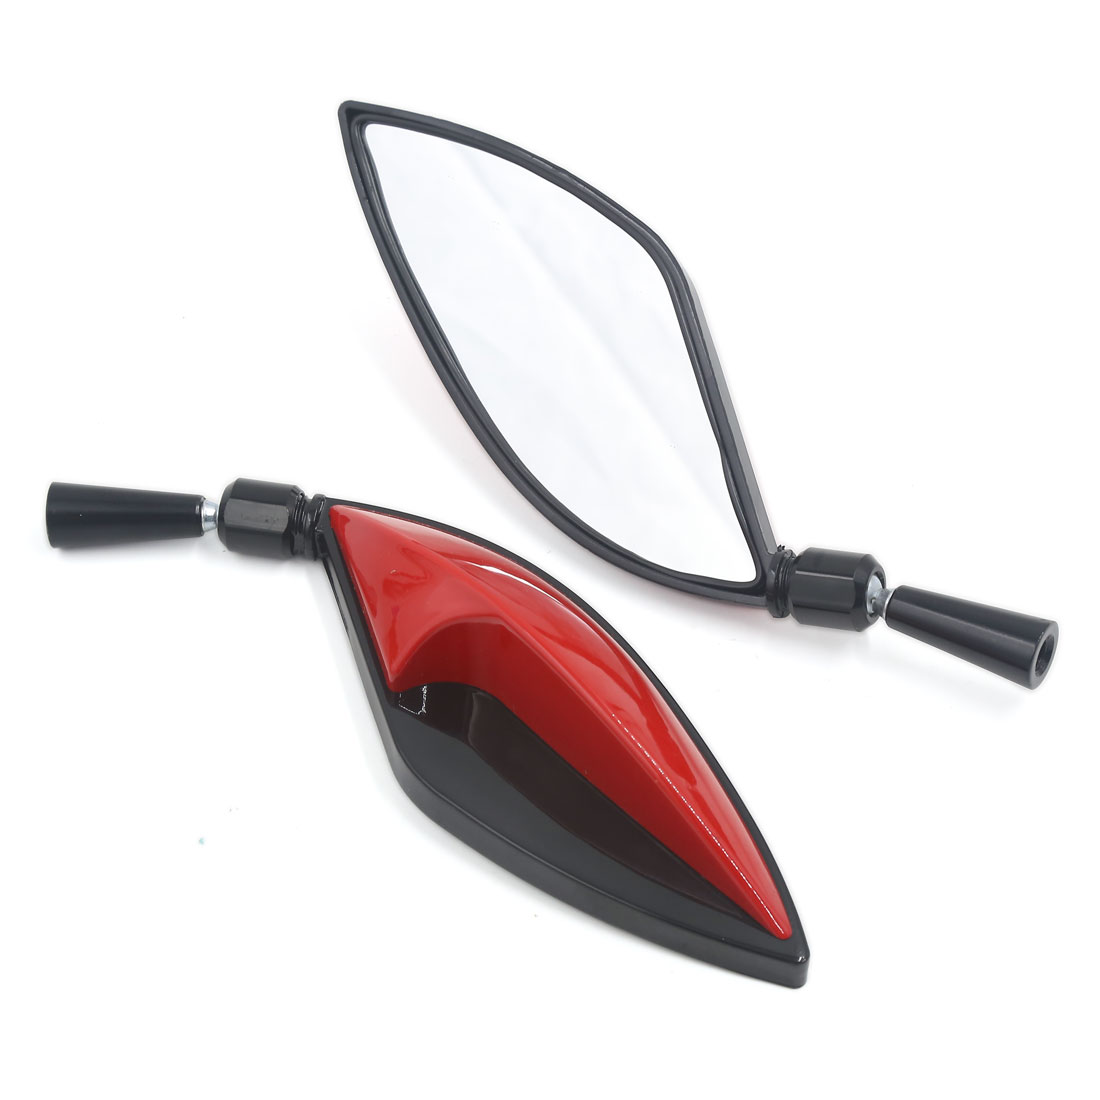 2pcs Universal Motorcycle Street Bike 8mm 10mm Thread Side Rearview Mirrors Red